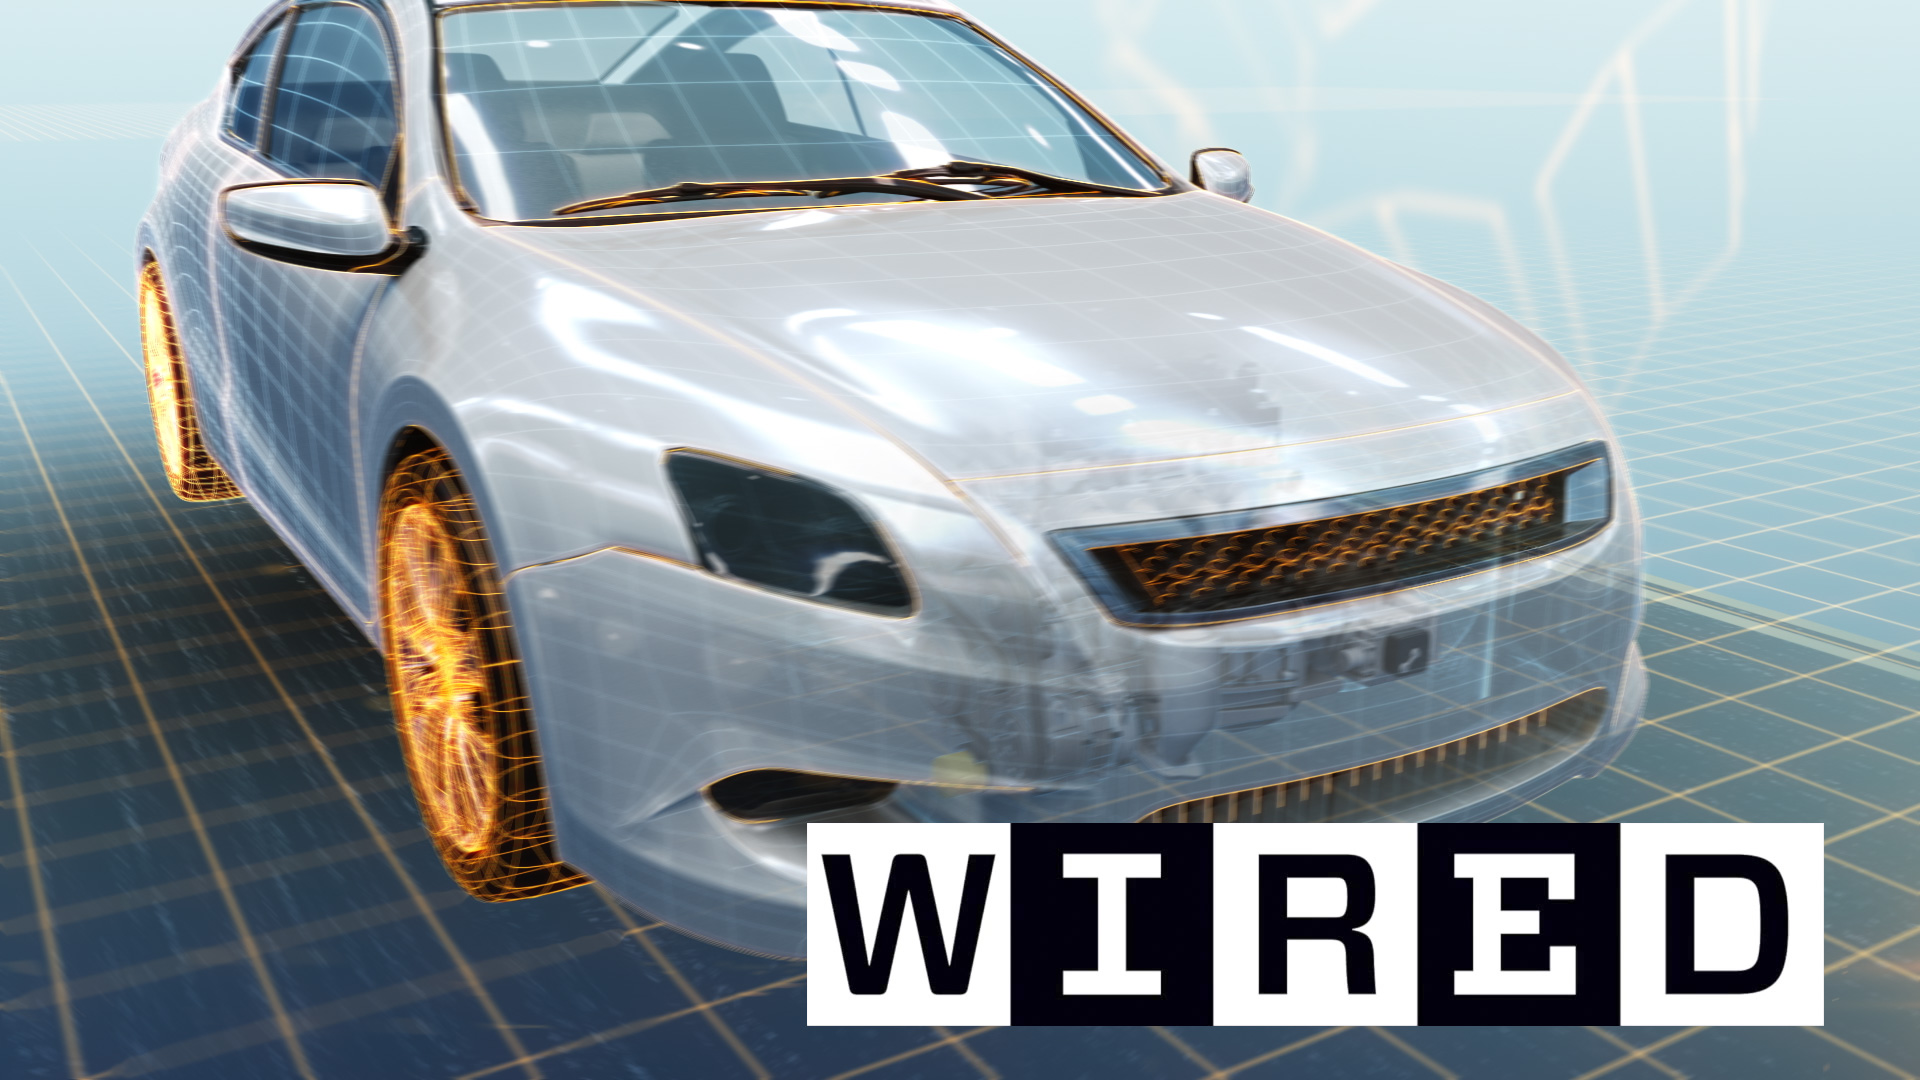 Wired_Hybrid_Texted_Prores (01213)_Thumbnail_001.jpg